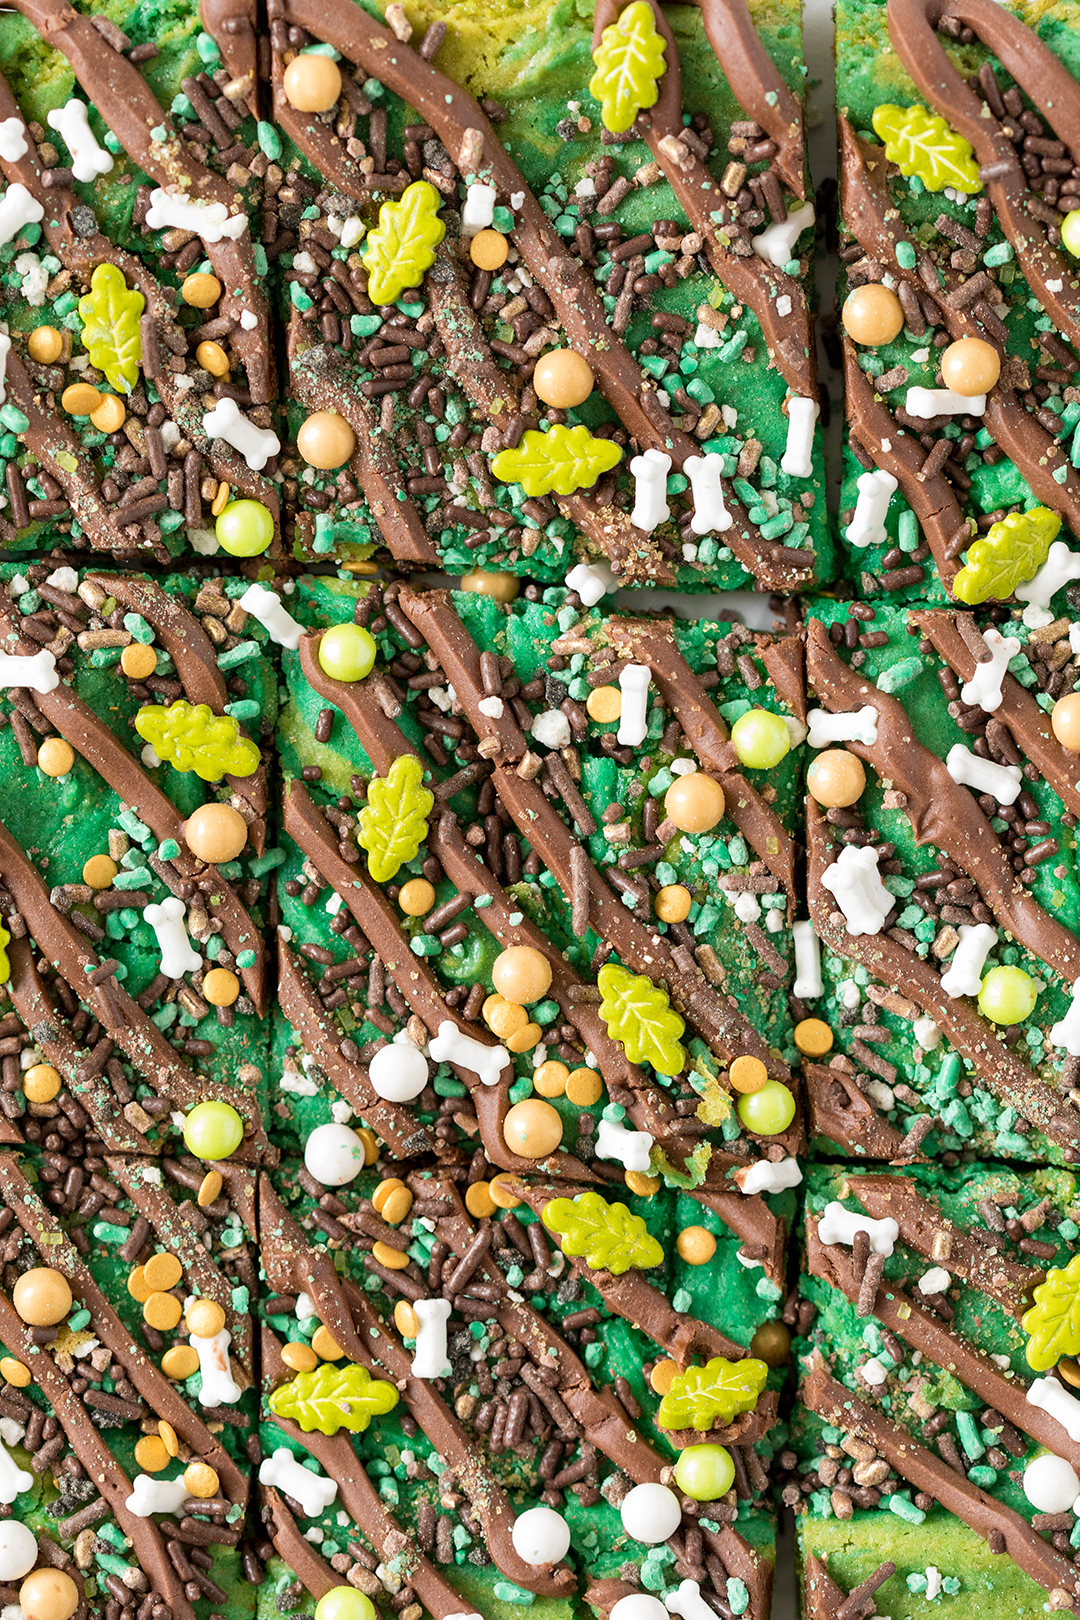 Dinosaur bars with drizzled chocolate frosting and edible dino sprinkles